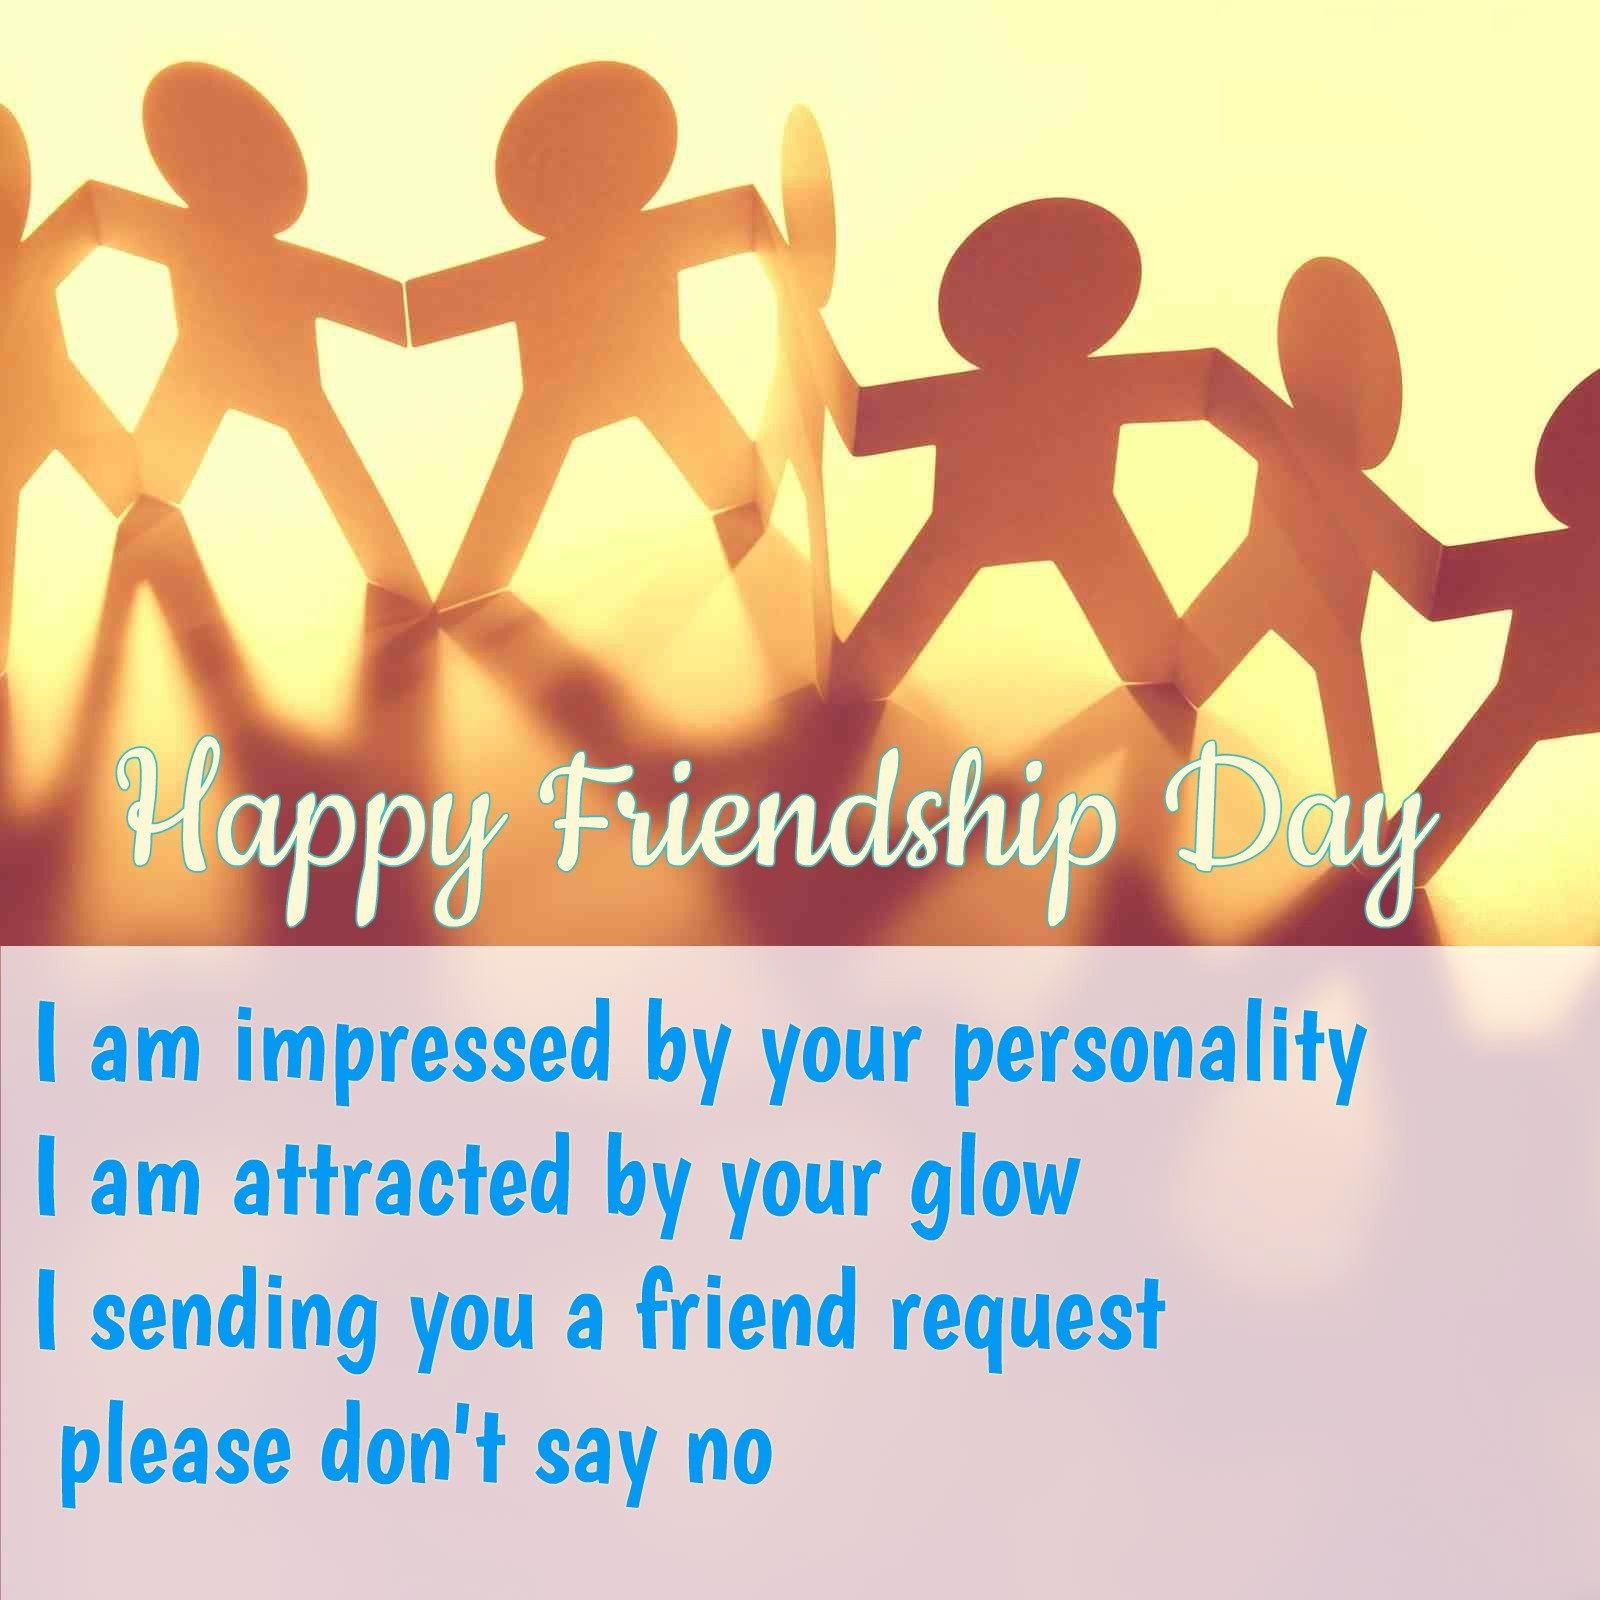 Friendship Day Quotes And Images For Best Friends Friendship Day